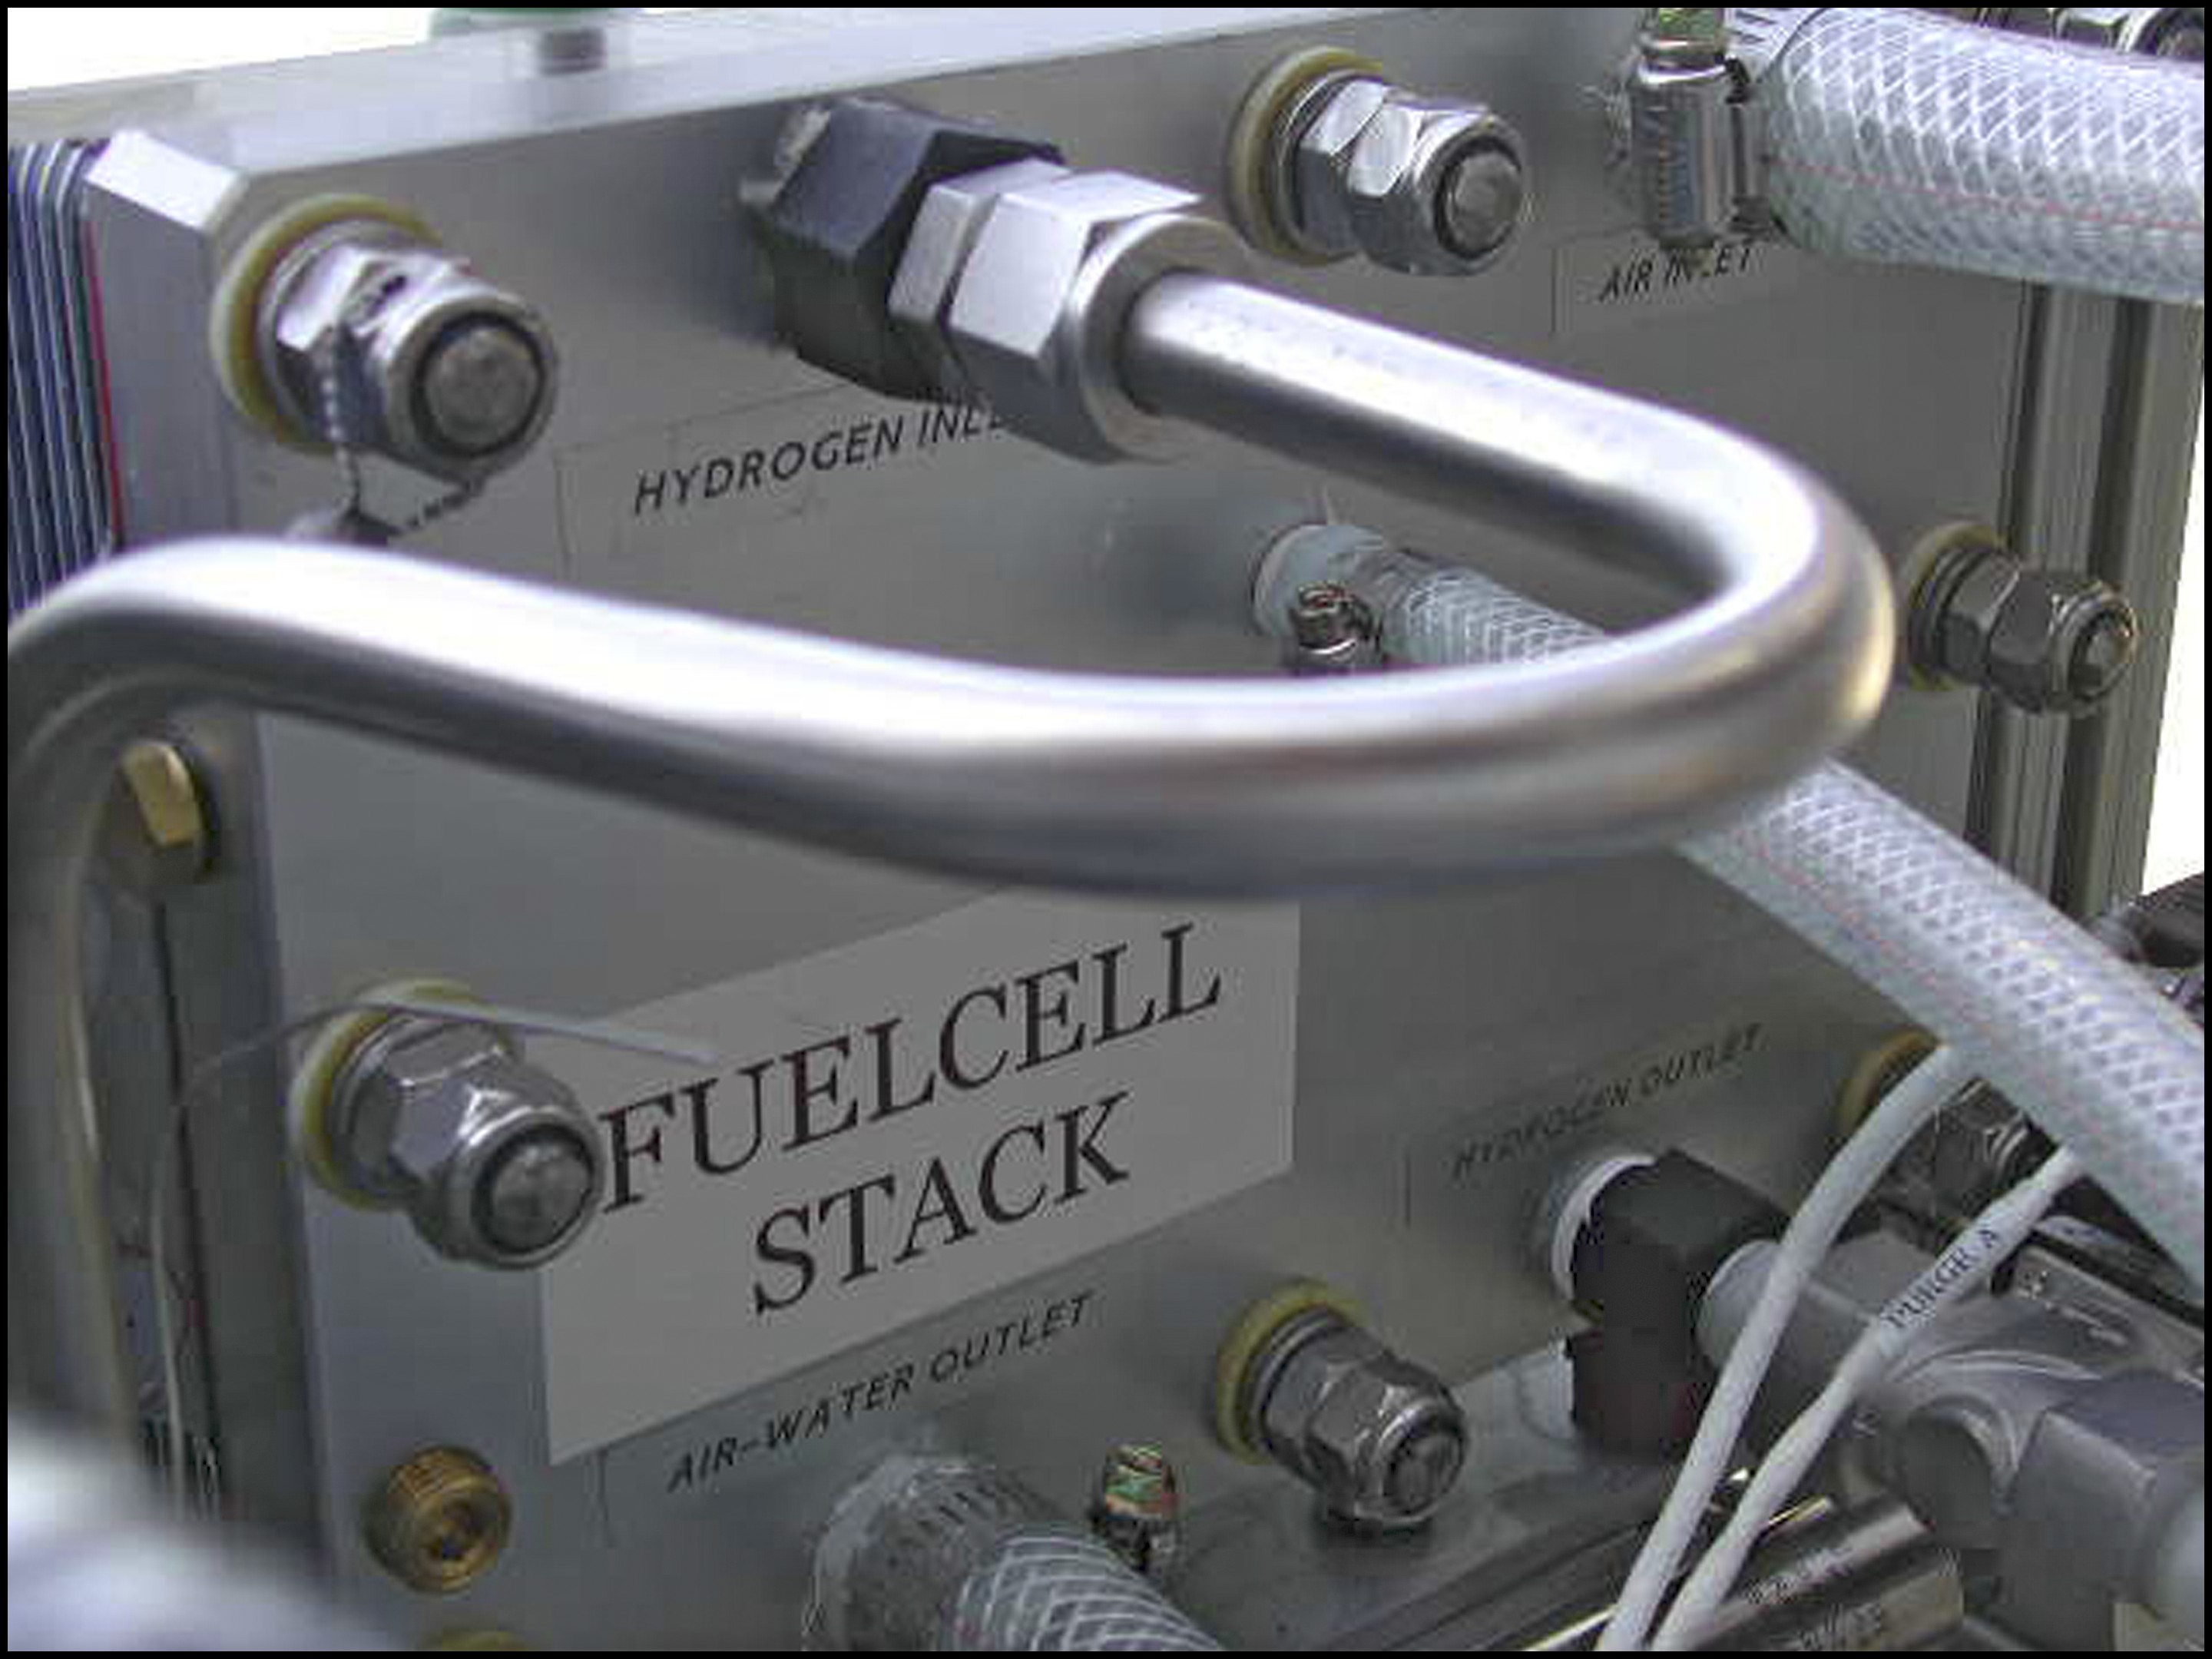 A photo of a fuelcell stack